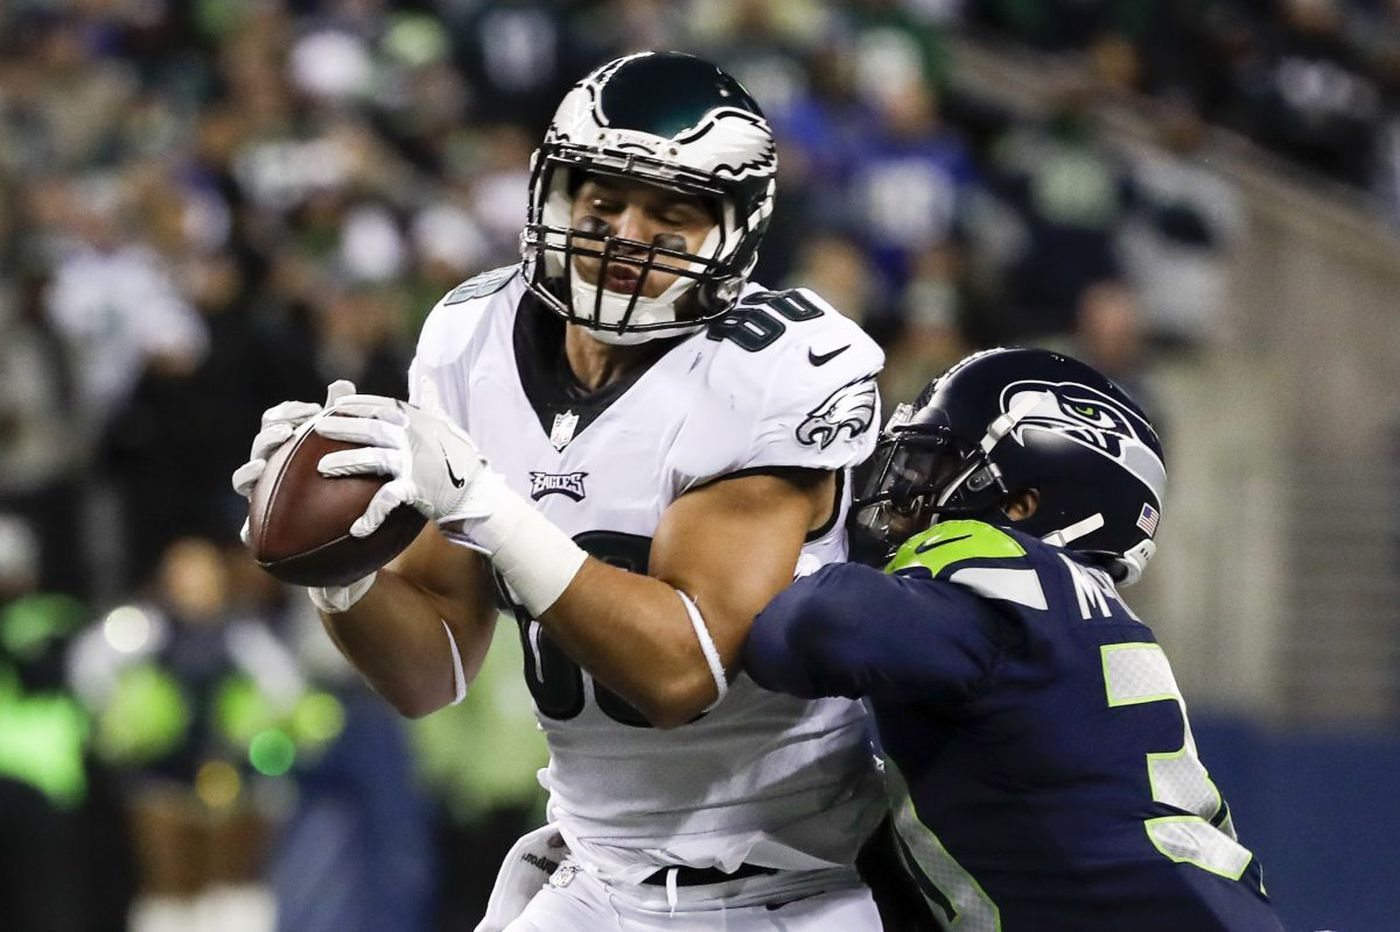 Eagles free agent Trey Burton reportedly taking his 'Philly Special' skills to Chicago